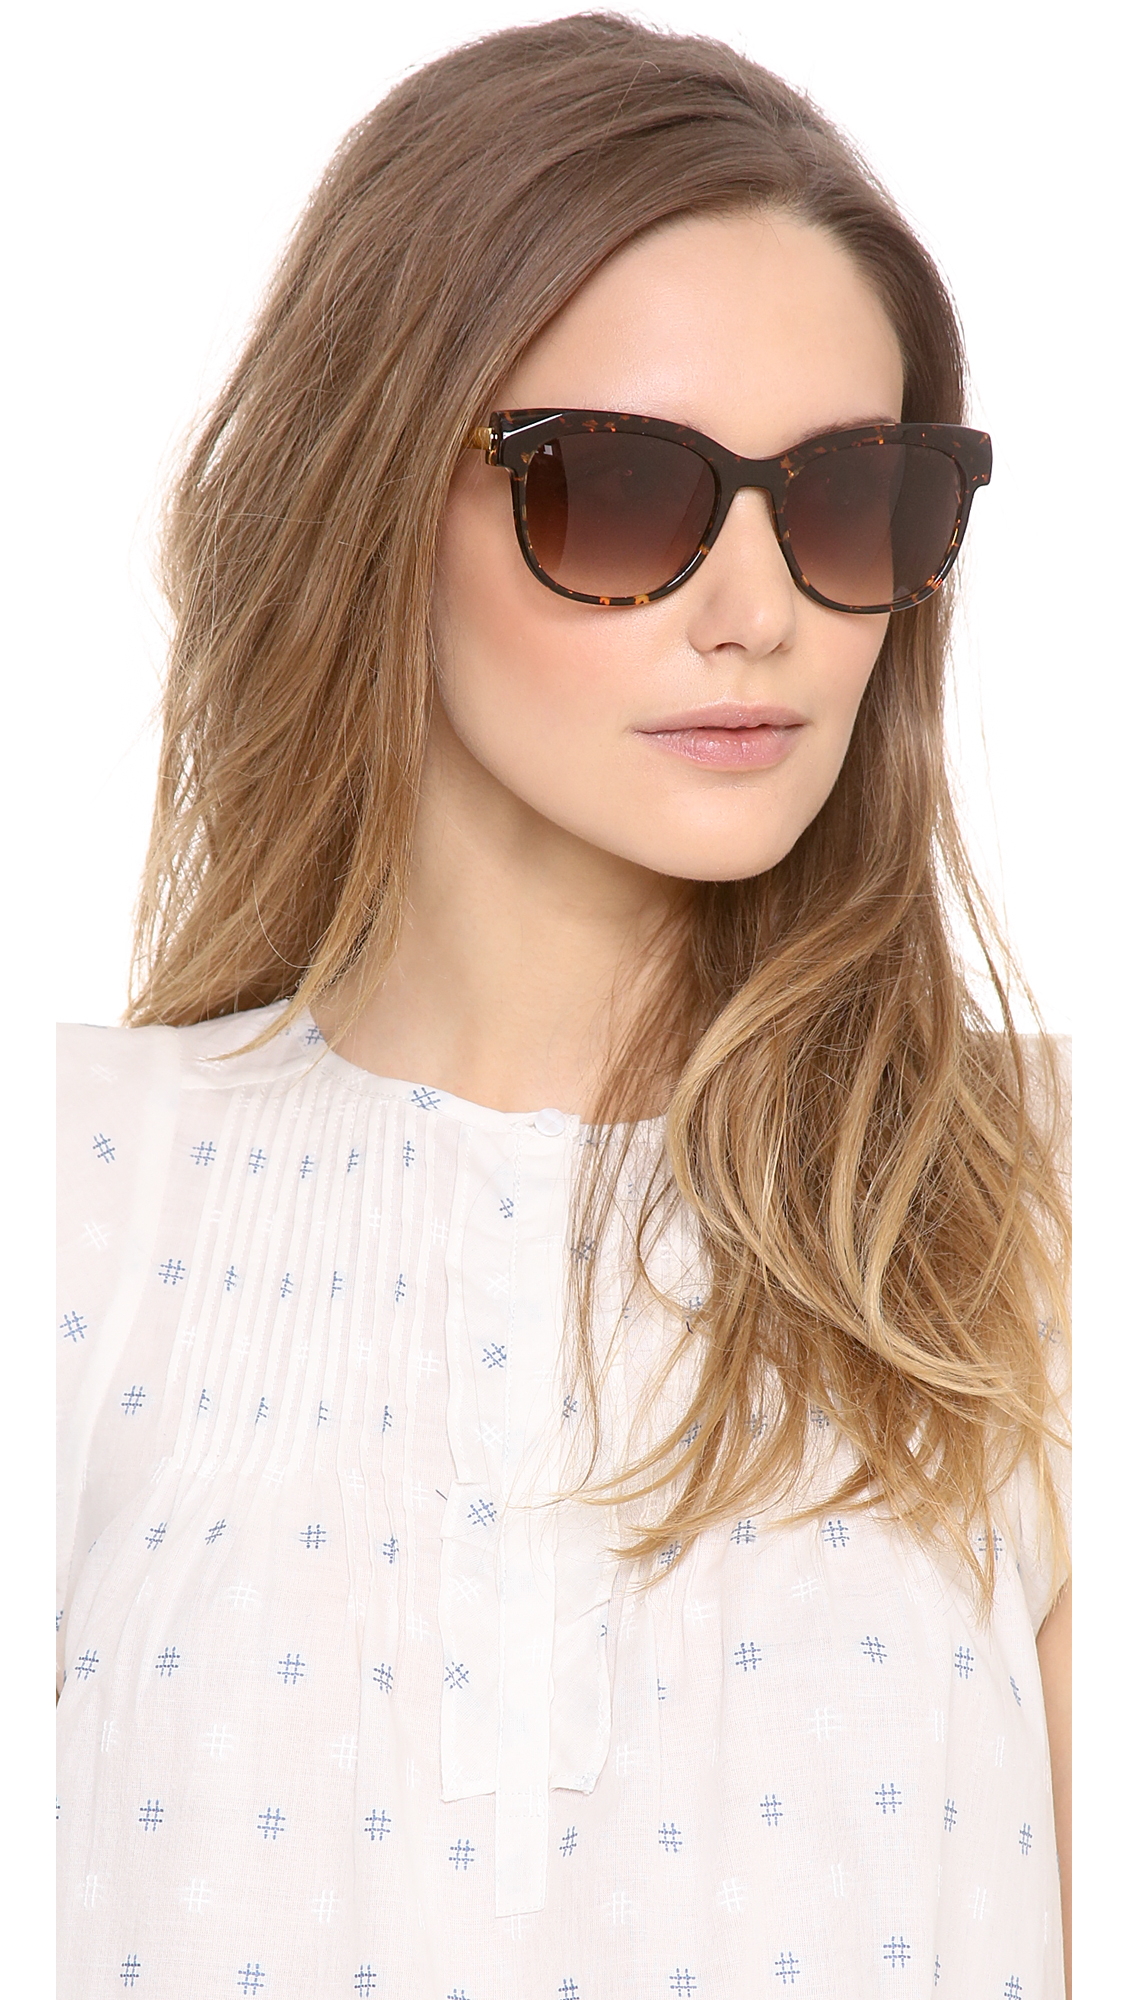 a2b57e3a51 Lyst - Thierry Lasry Lippy Sunglasses in Brown